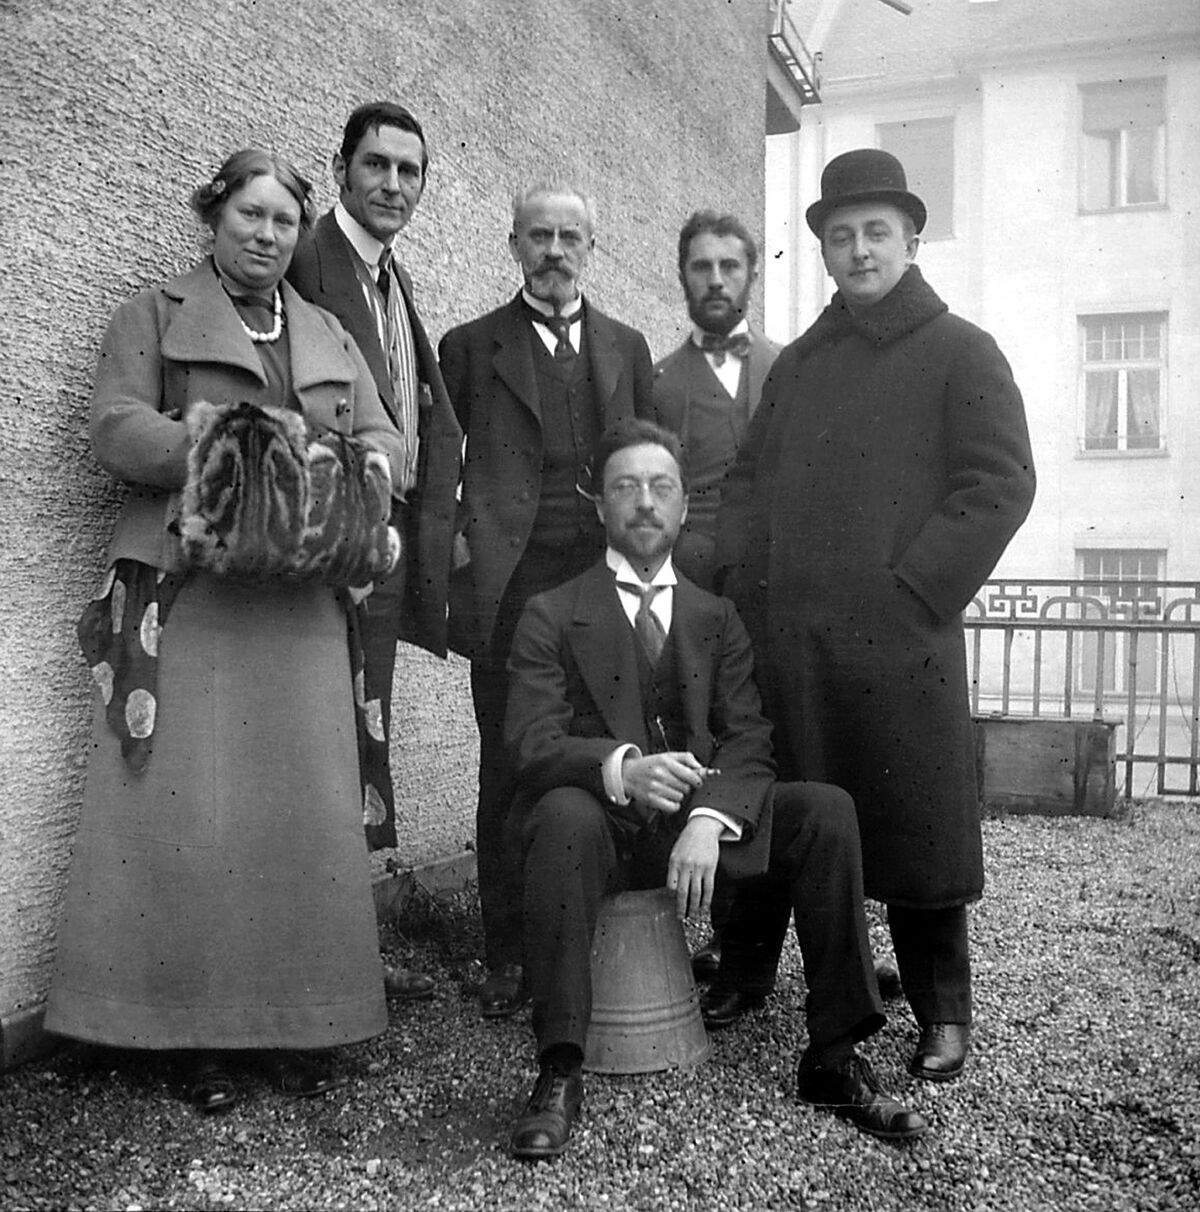 Wassily Kandinsky with a group of artists from the Blue Rider. Photo by Fine Art Images/Heritage Images/Getty Images.